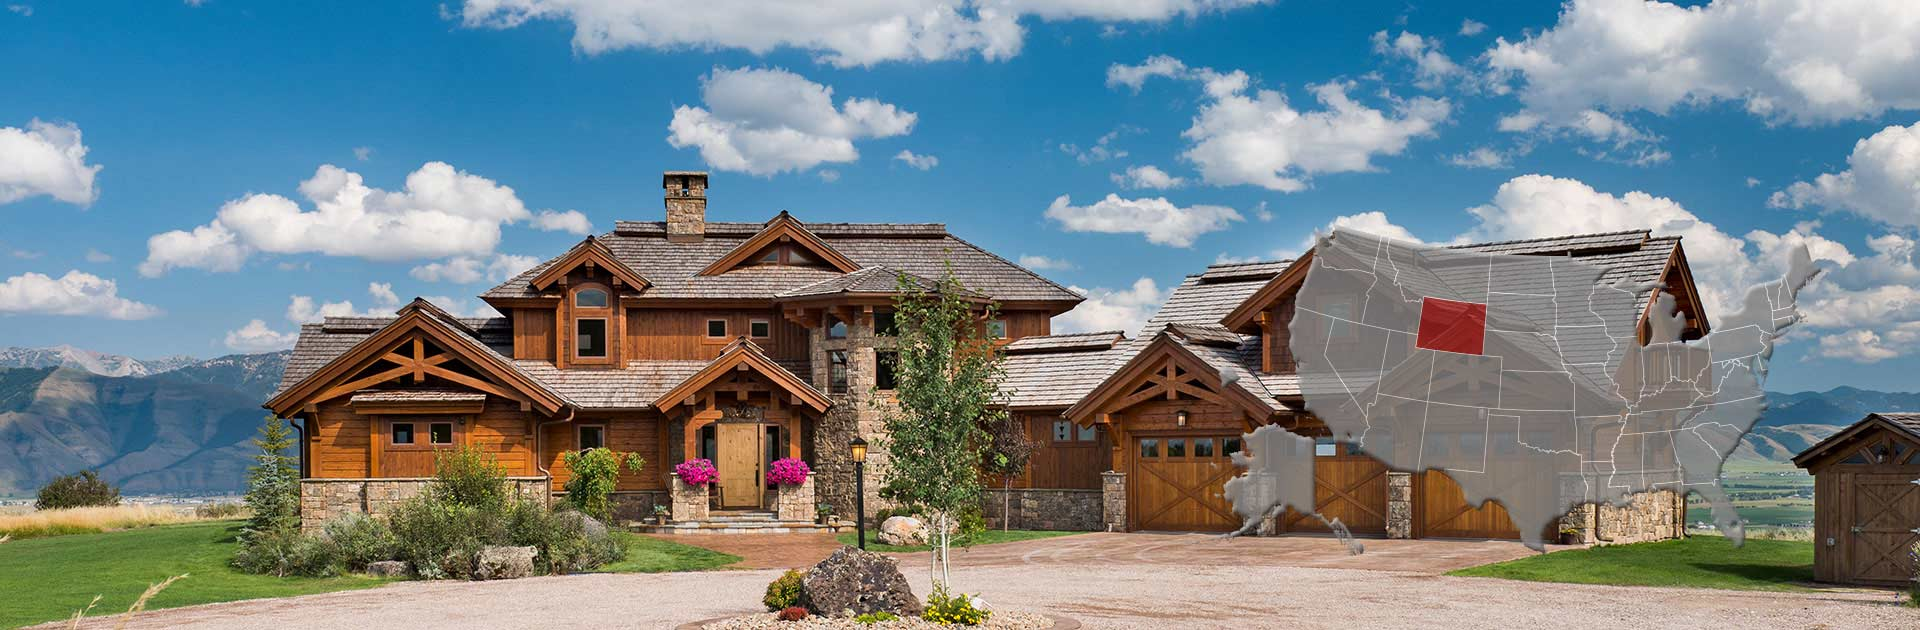 28 wyoming house top 10 most expensive houses for Wyoming home builders